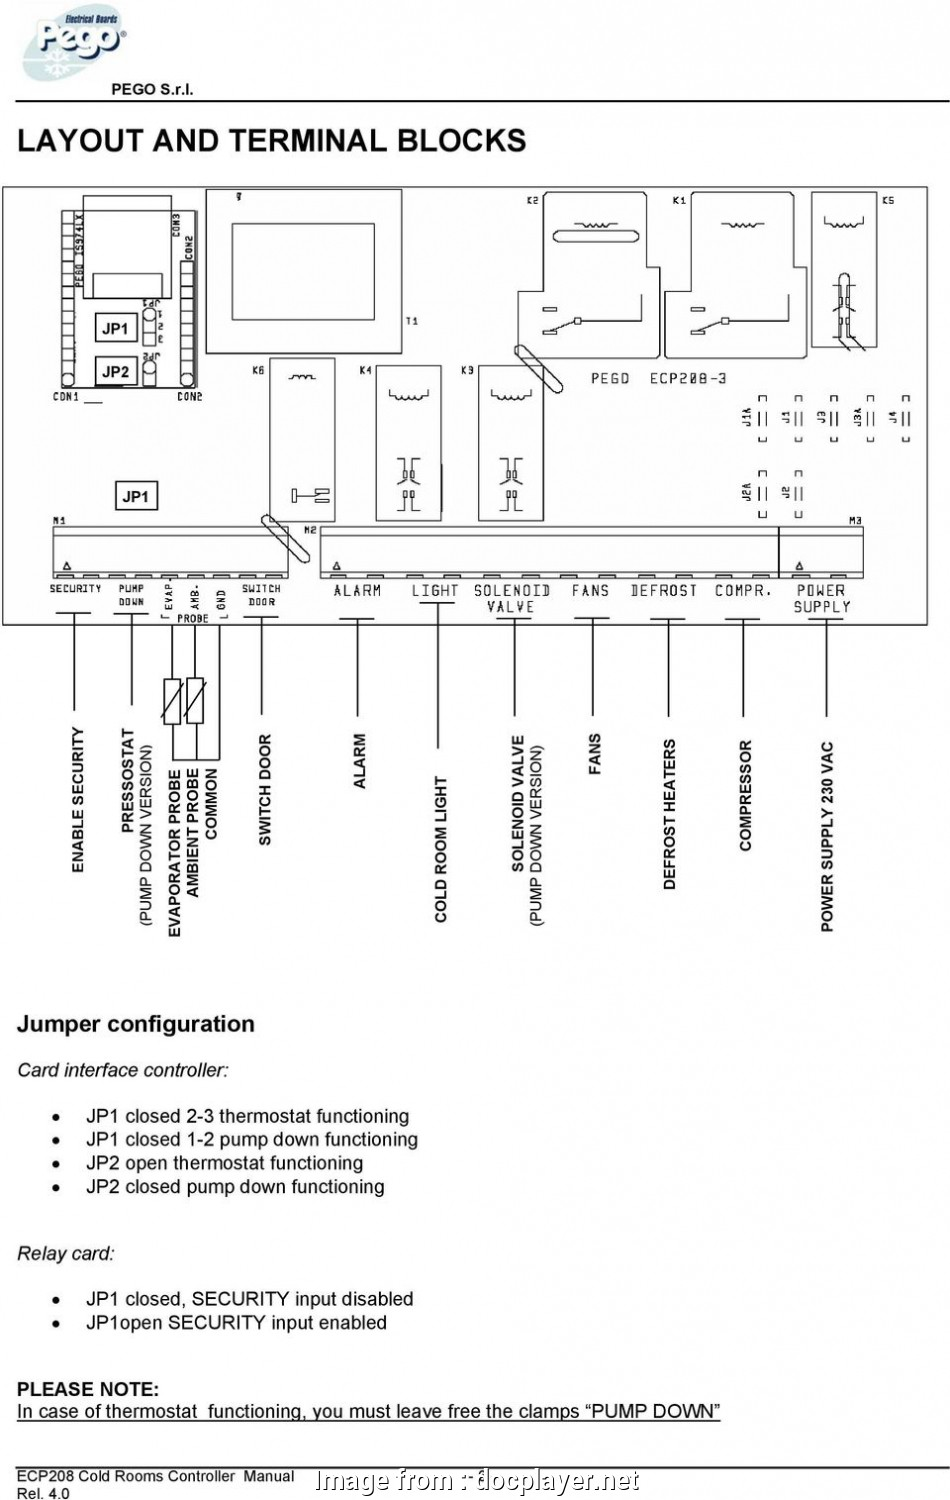 eliwell thermostat wiring diagram thermostat functioning, closed, pump down  functioning, open thermostat functioning